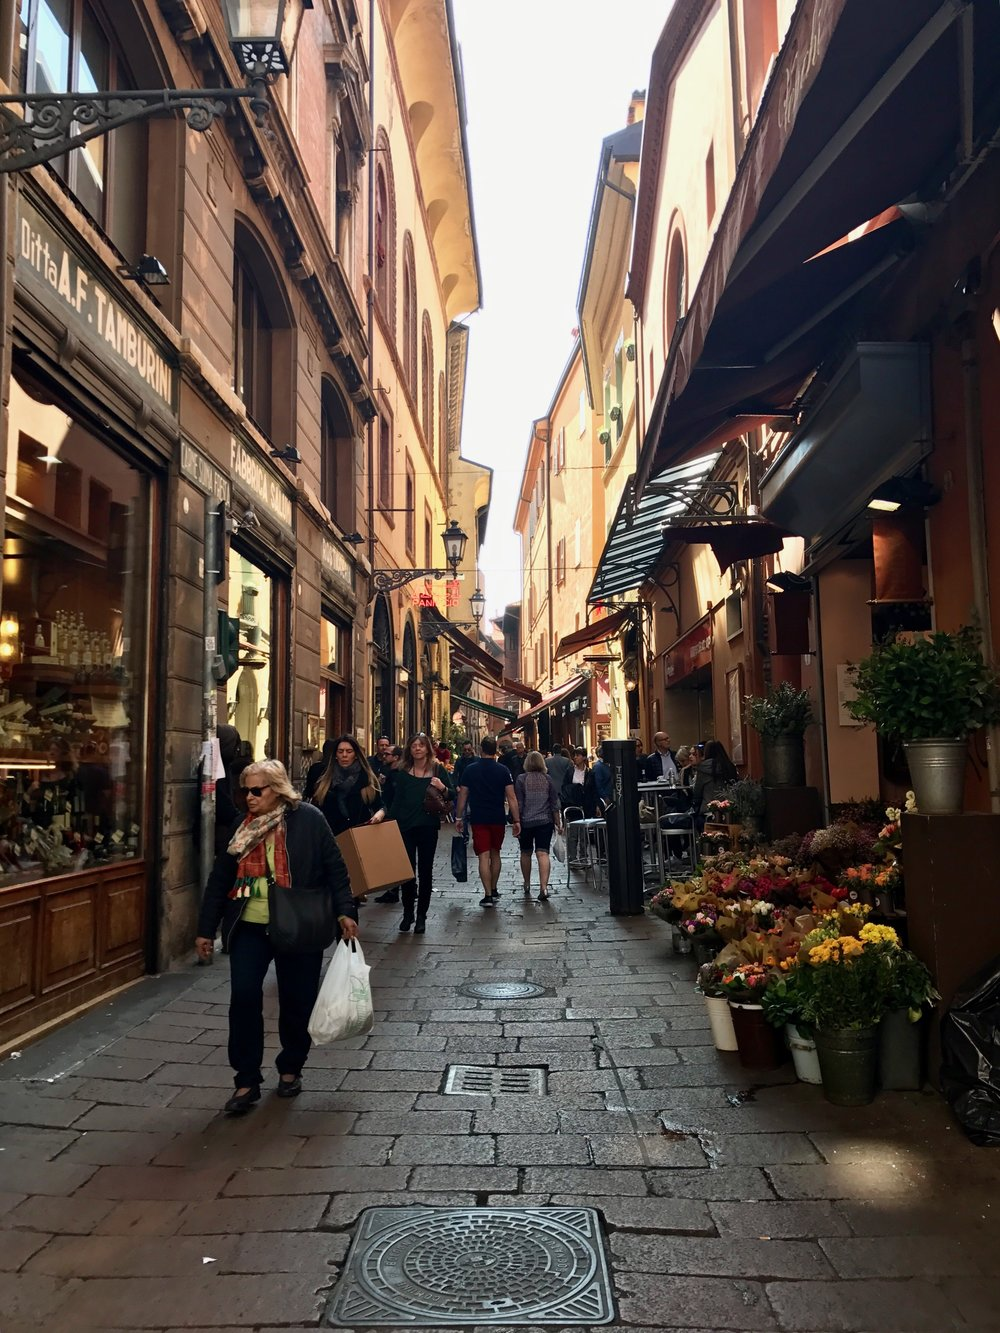 Tourists and citizens cruise through the city streets of Bologna.